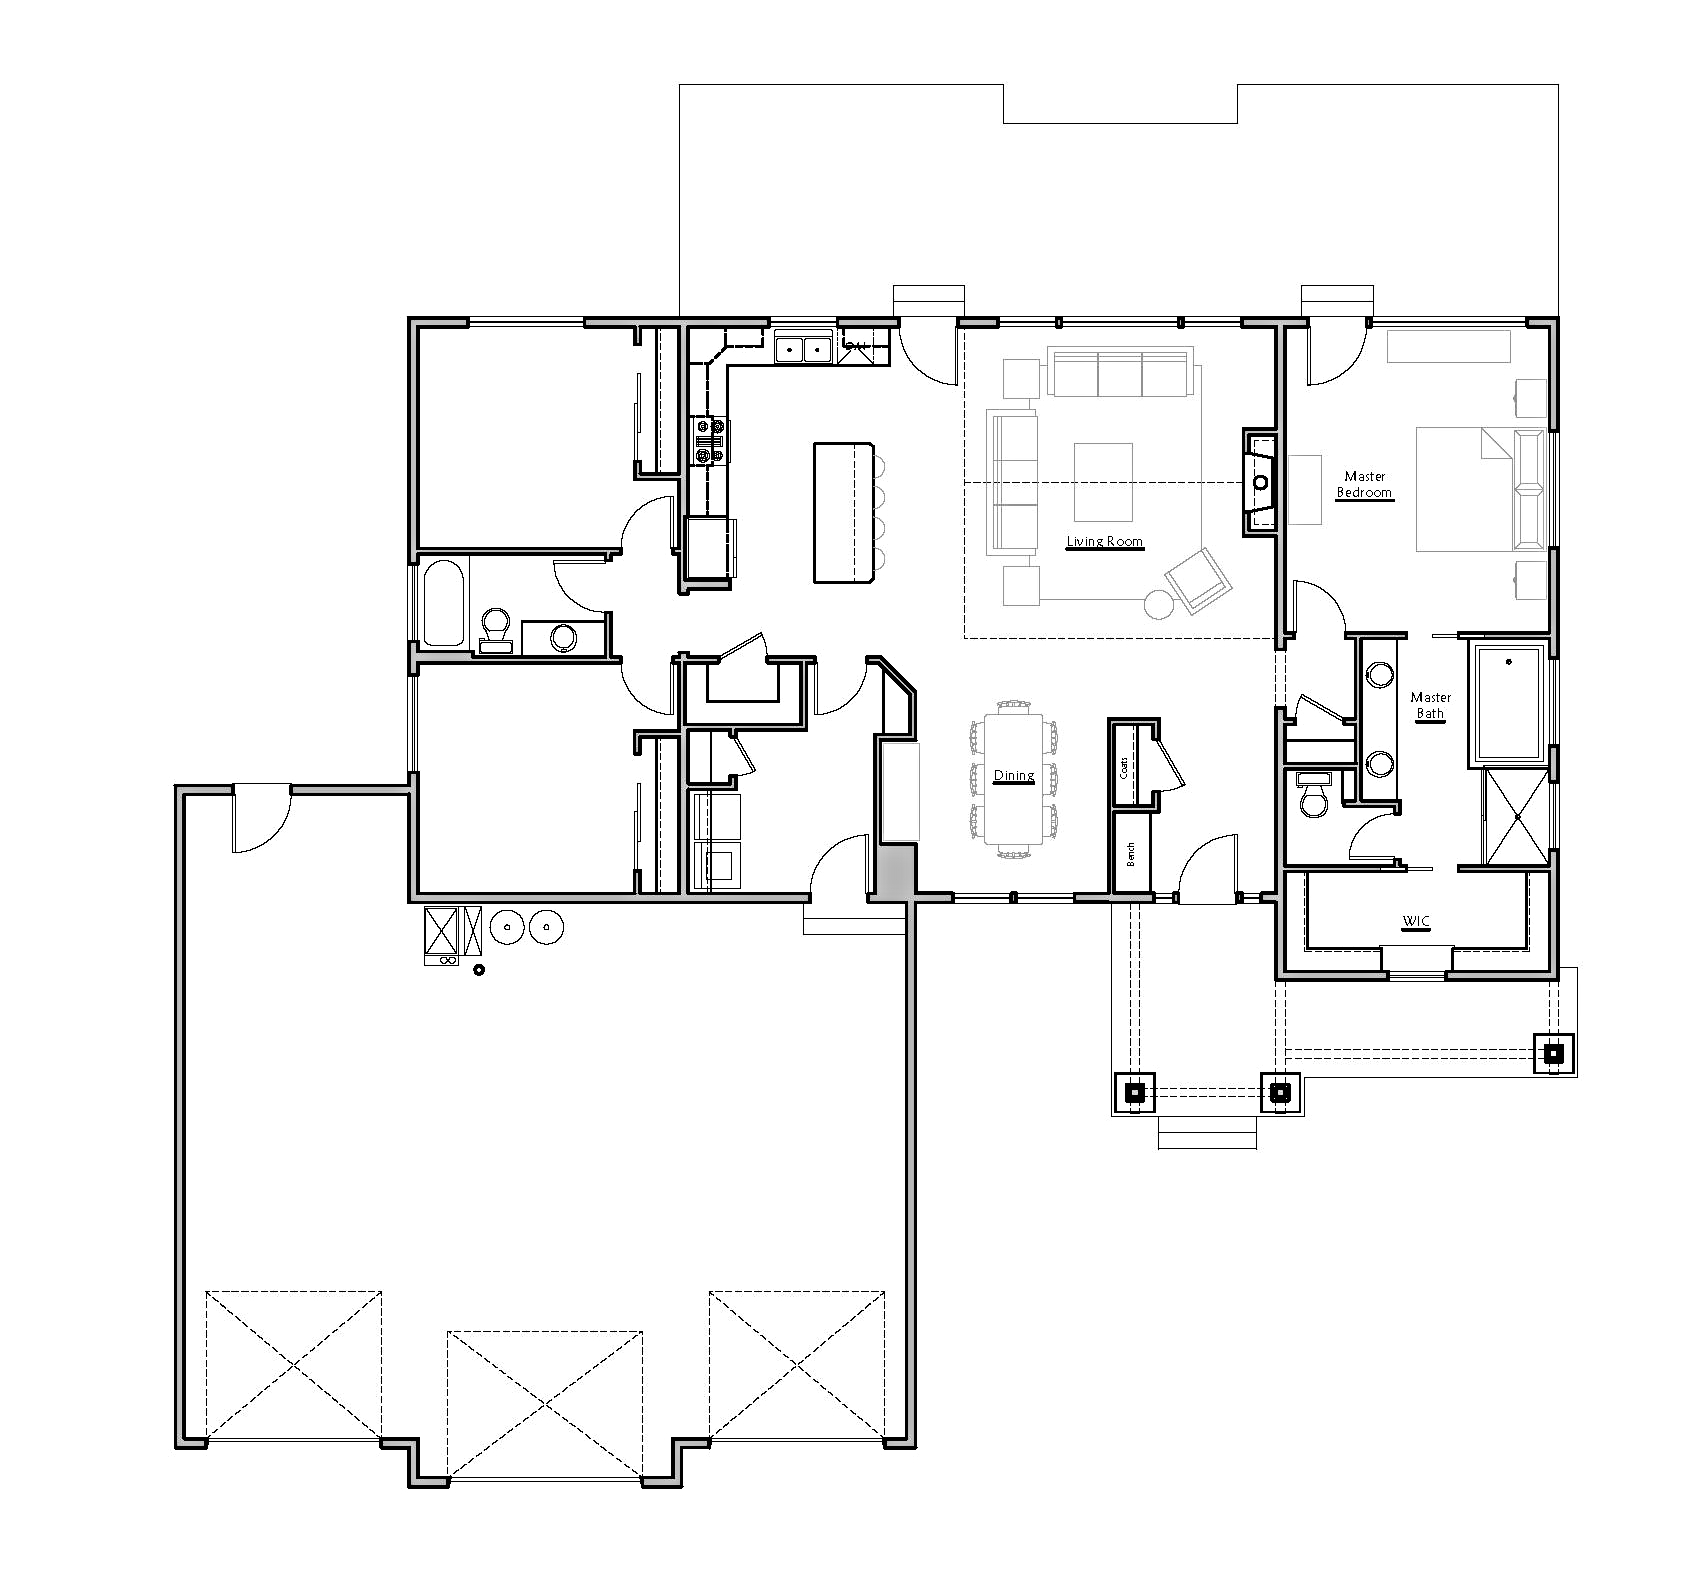 Marketing Floor Plans 1850SF.jpg